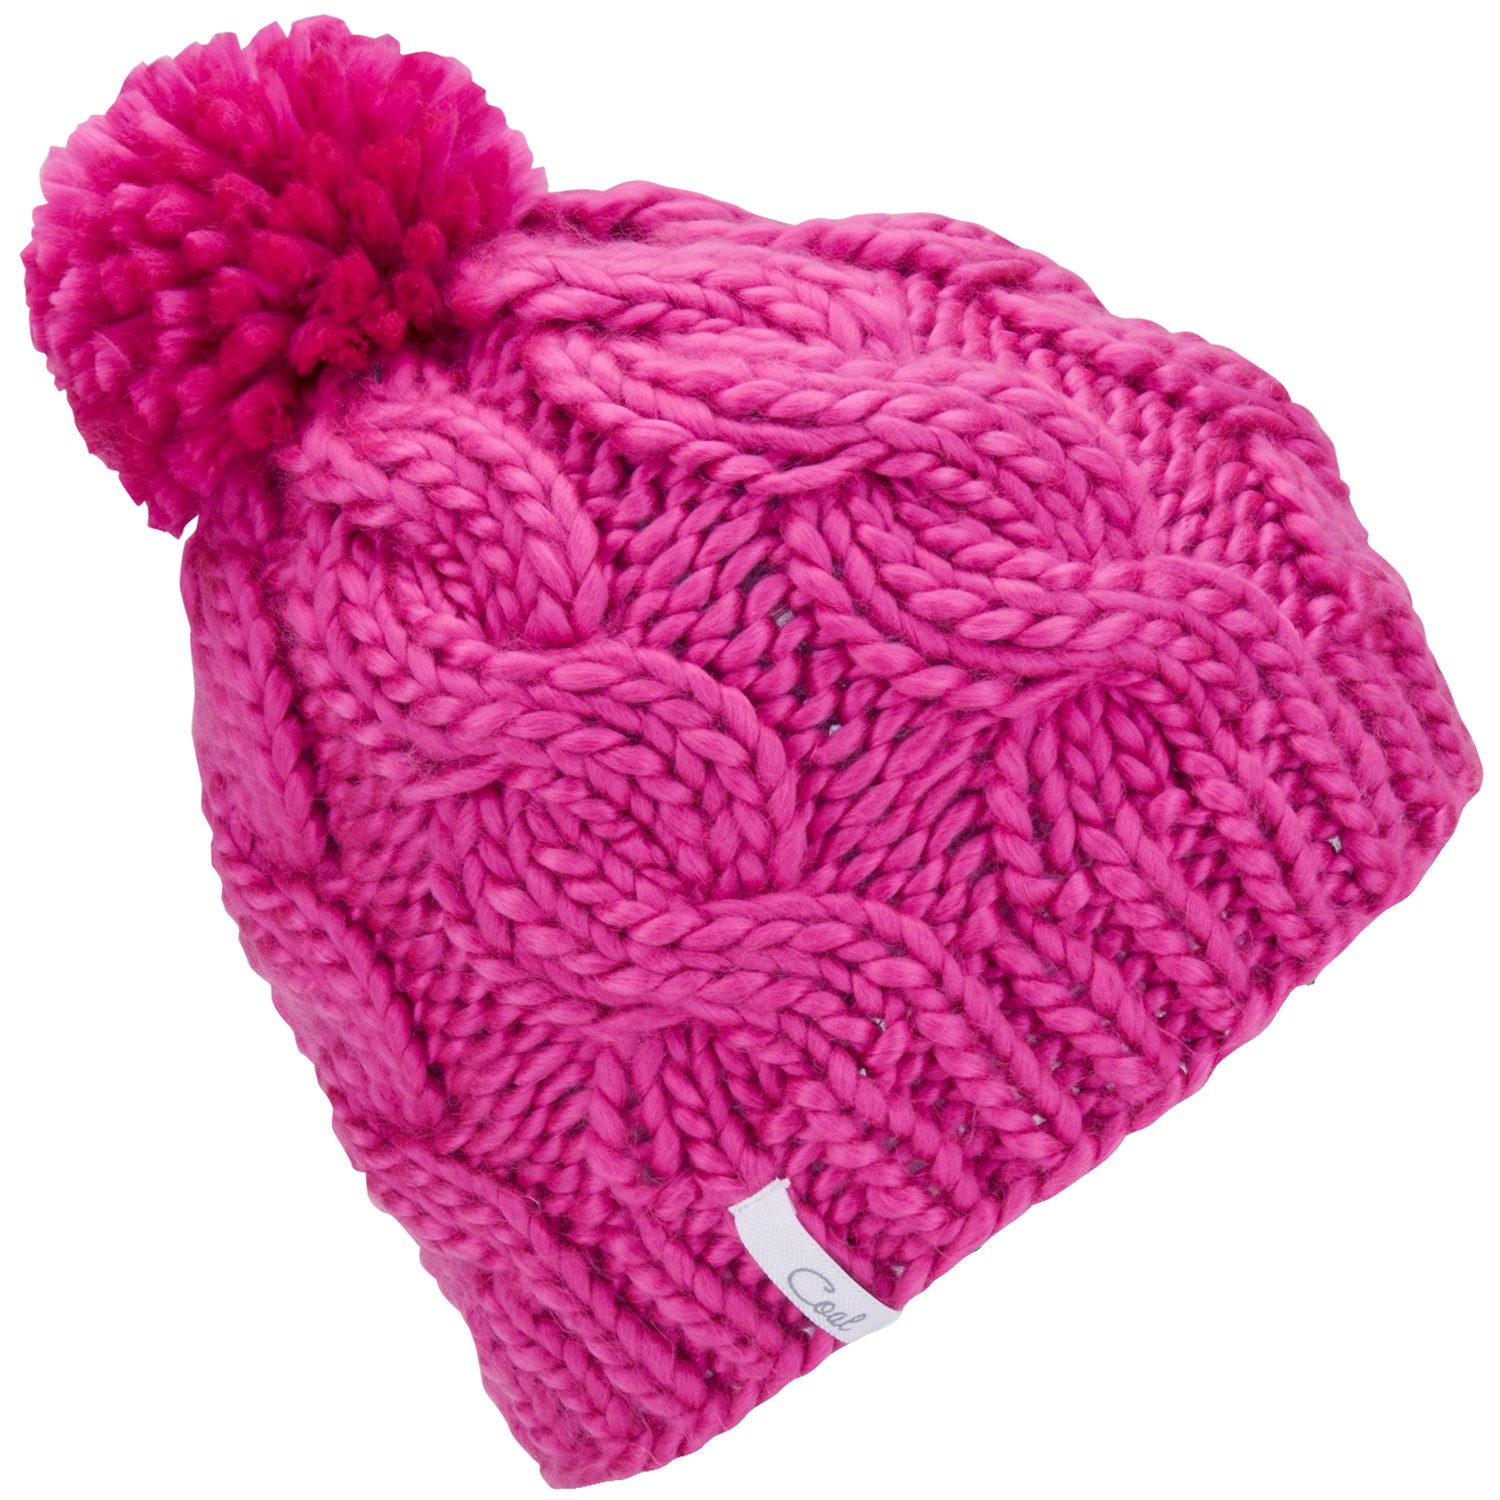 ba7e21f5505 Coal The Rosa Beanie - Women s